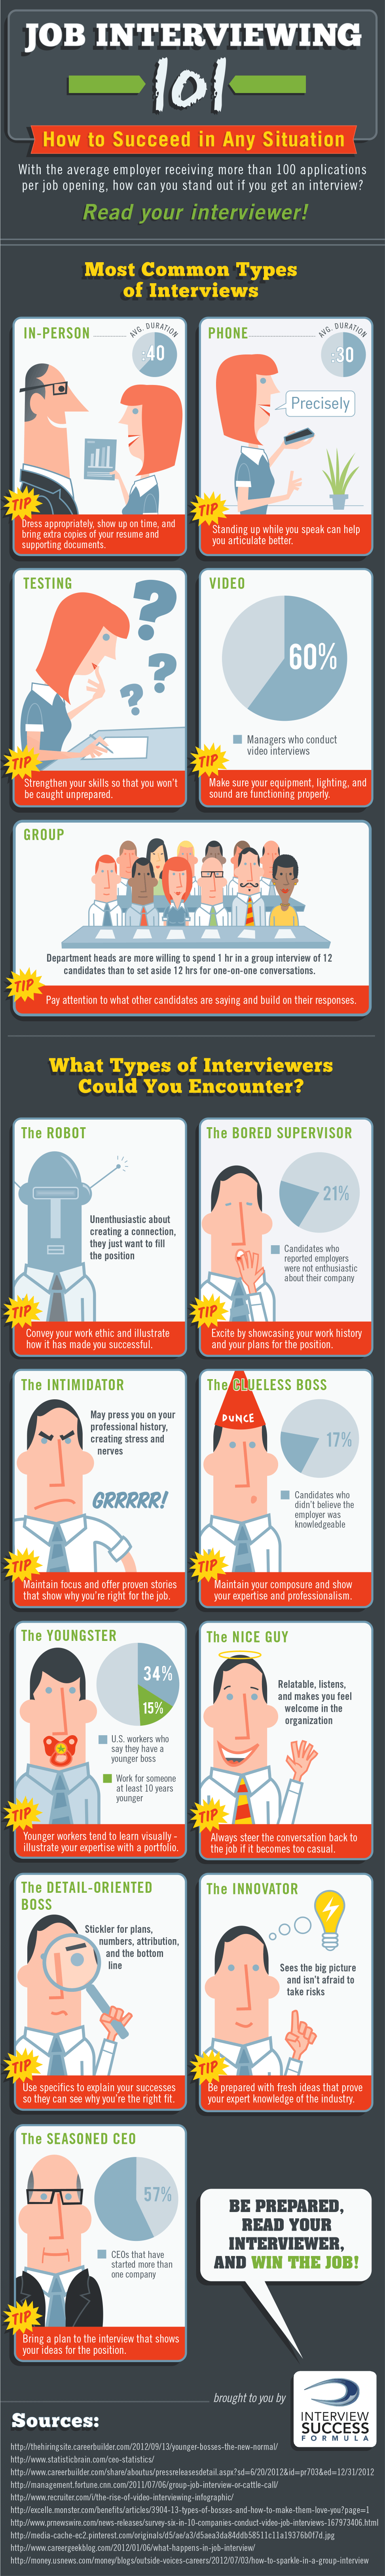 Daily Infographic Job Interviews 101